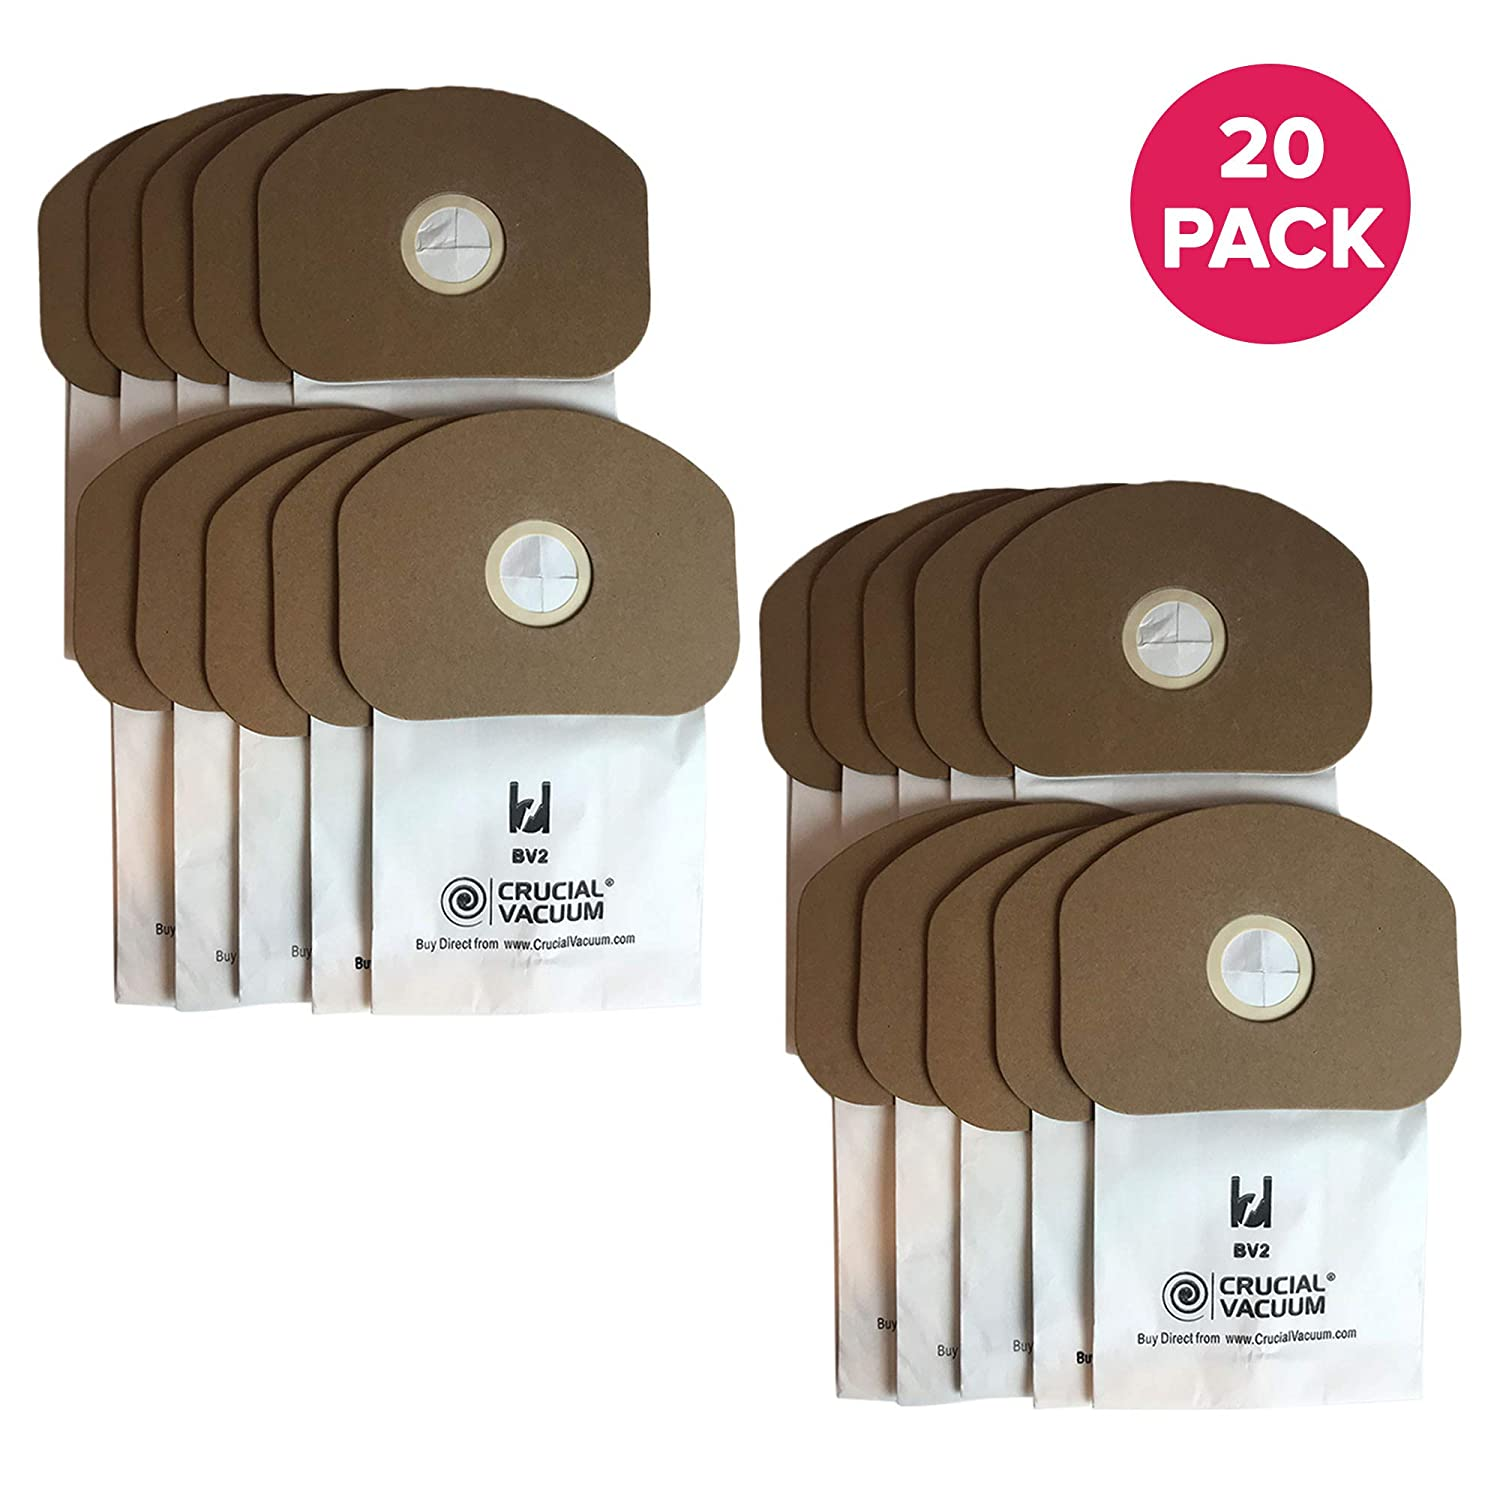 Think Crucial 20 Replacements for Eureka BV-2 Bags Fit Sanitaire, Backpack, Carpet Pro, Piranha, Tornado, Compatible With Part # 62370